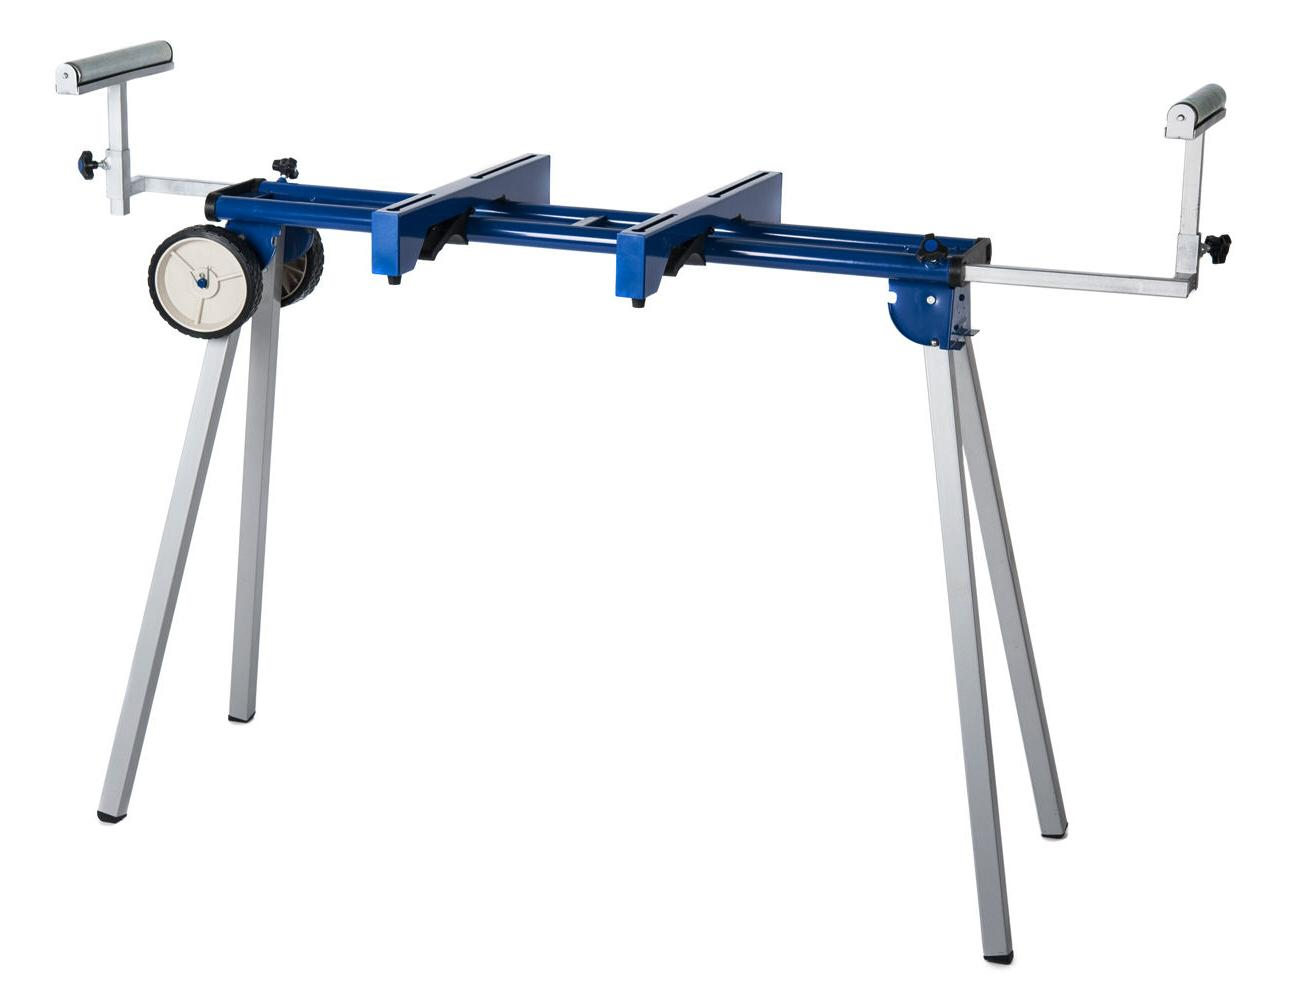 HICO Saw Wheels, Machine Mounts Material Roller Supports